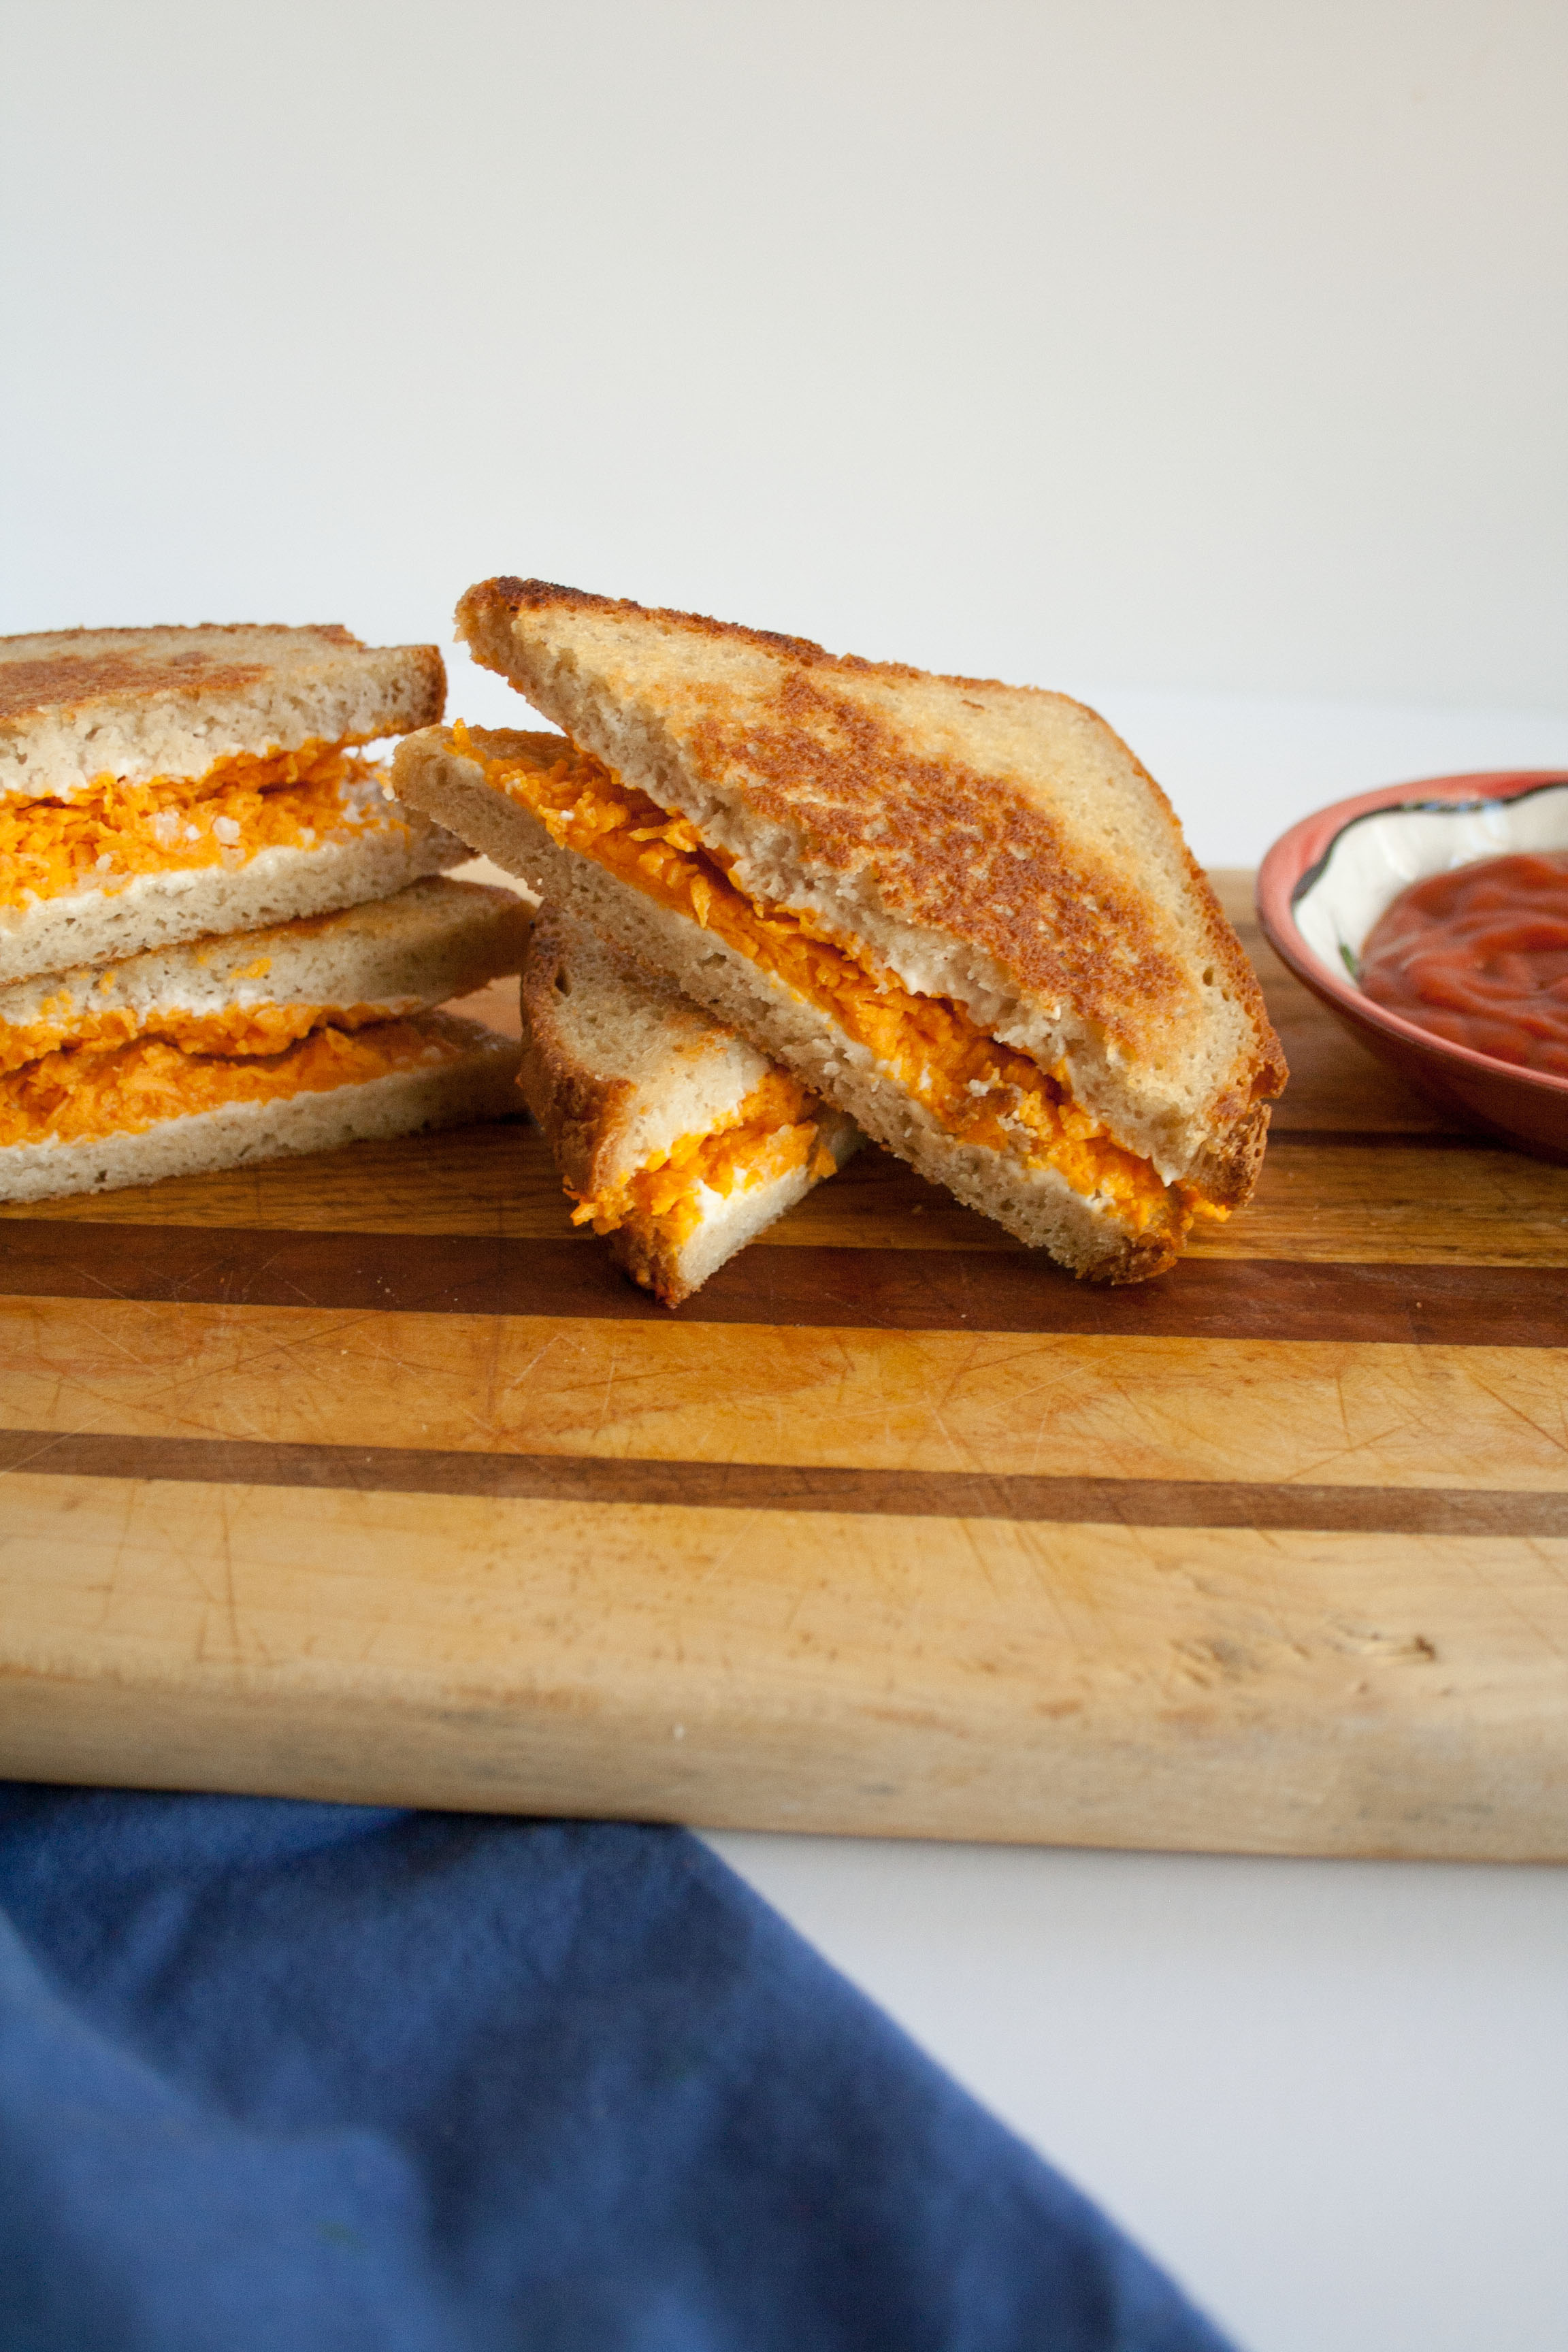 Vegan Grilled Cheese on cutting board.